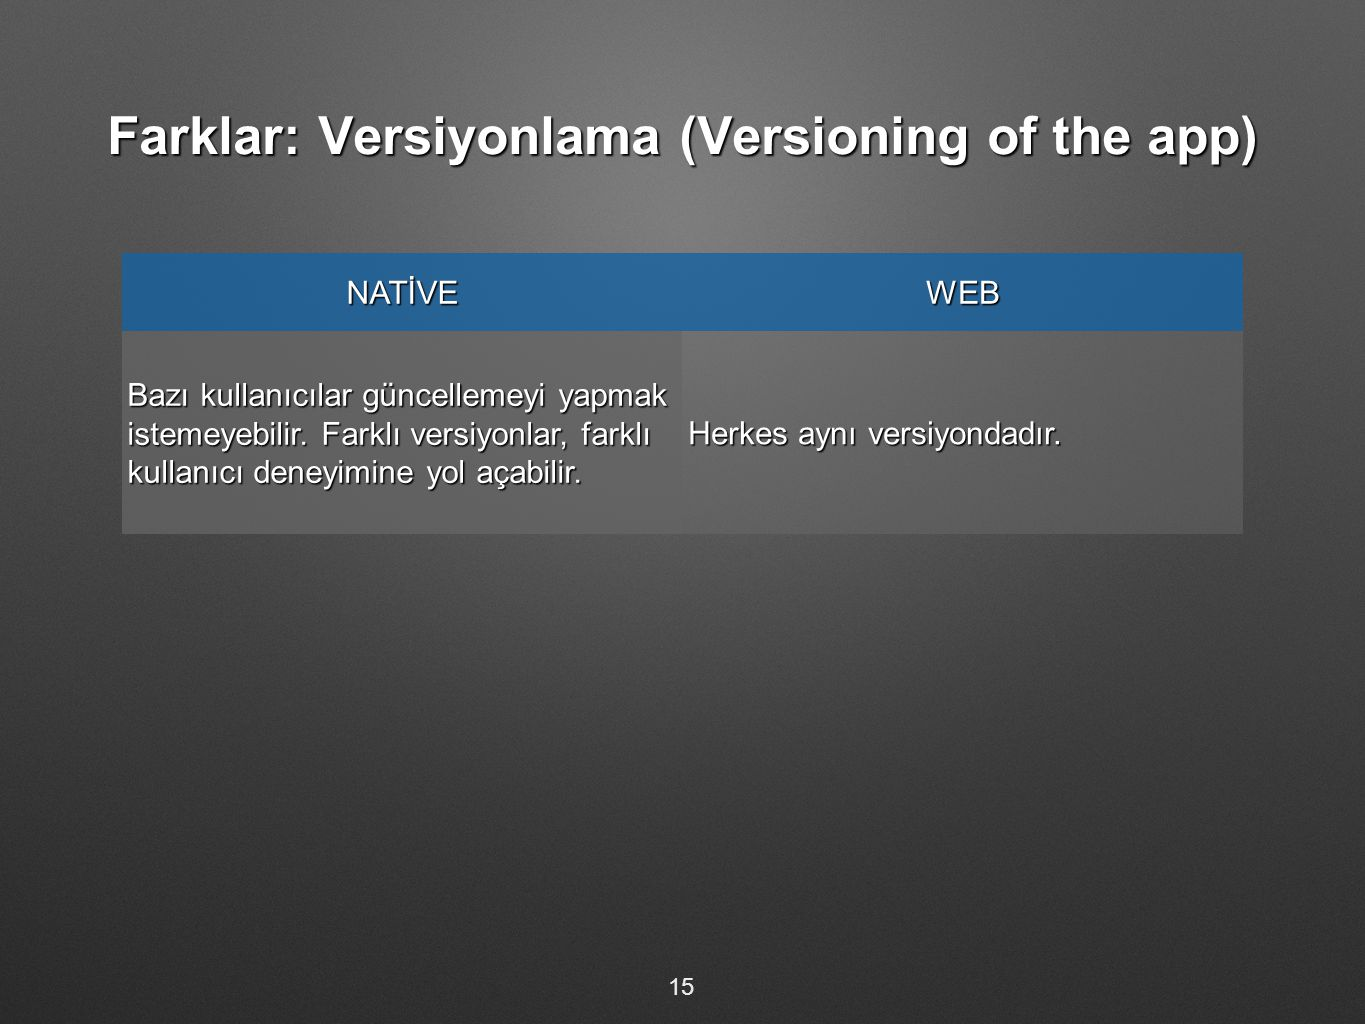 Farklar: Versiyonlama (Versioning of the app)